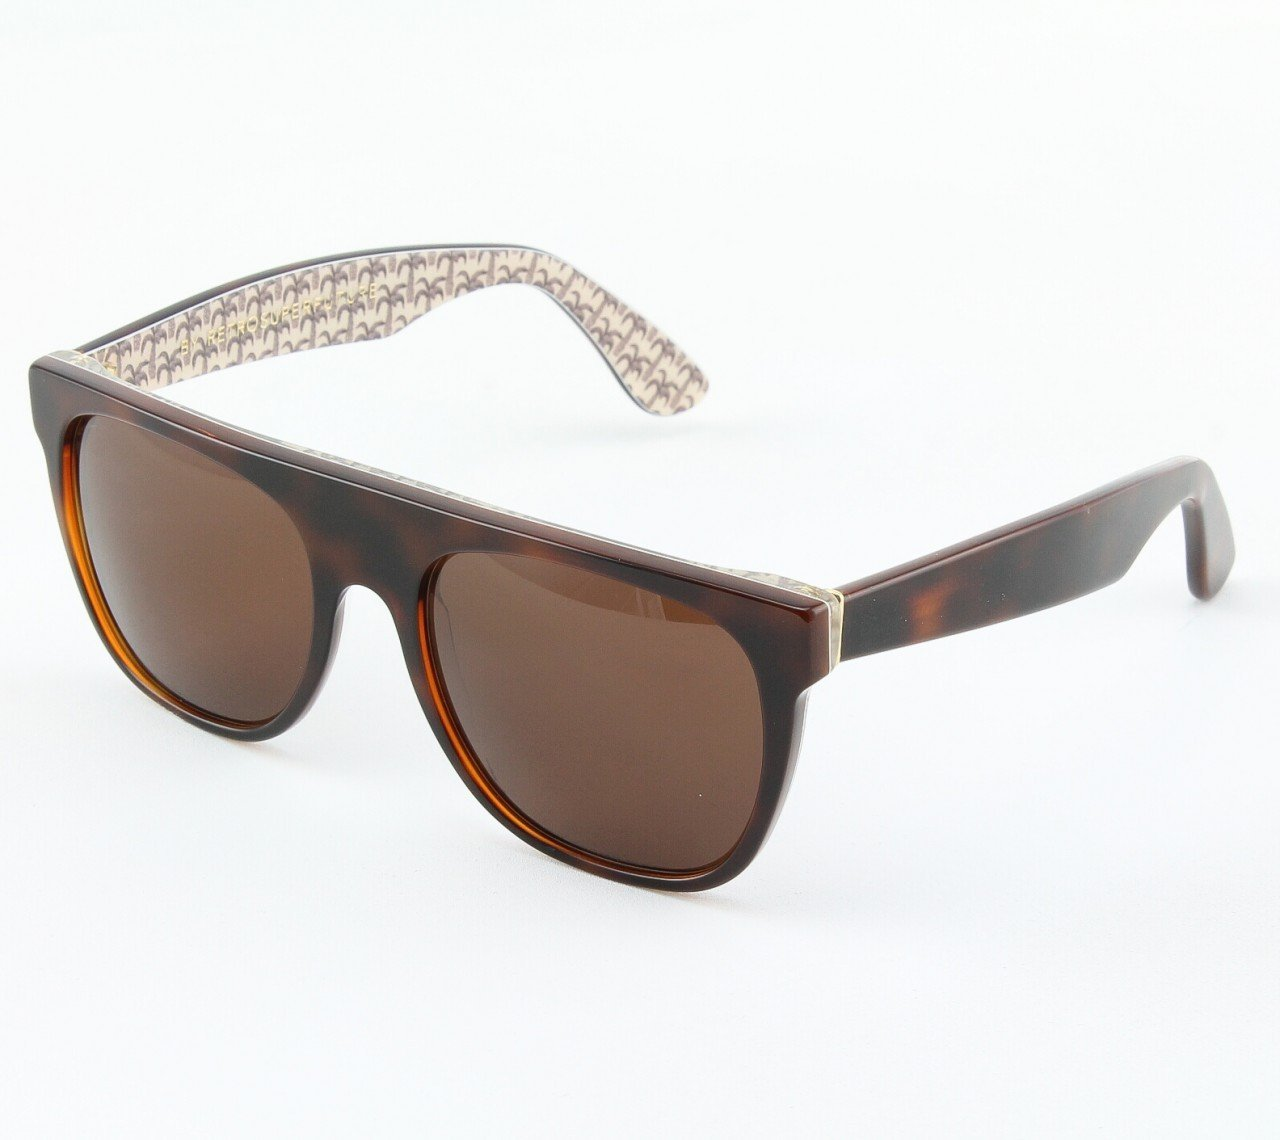 Super Flat Top 509/3T Sunglasses Brown with Brown Zeiss Lenses by RETROSUPERFUTURE